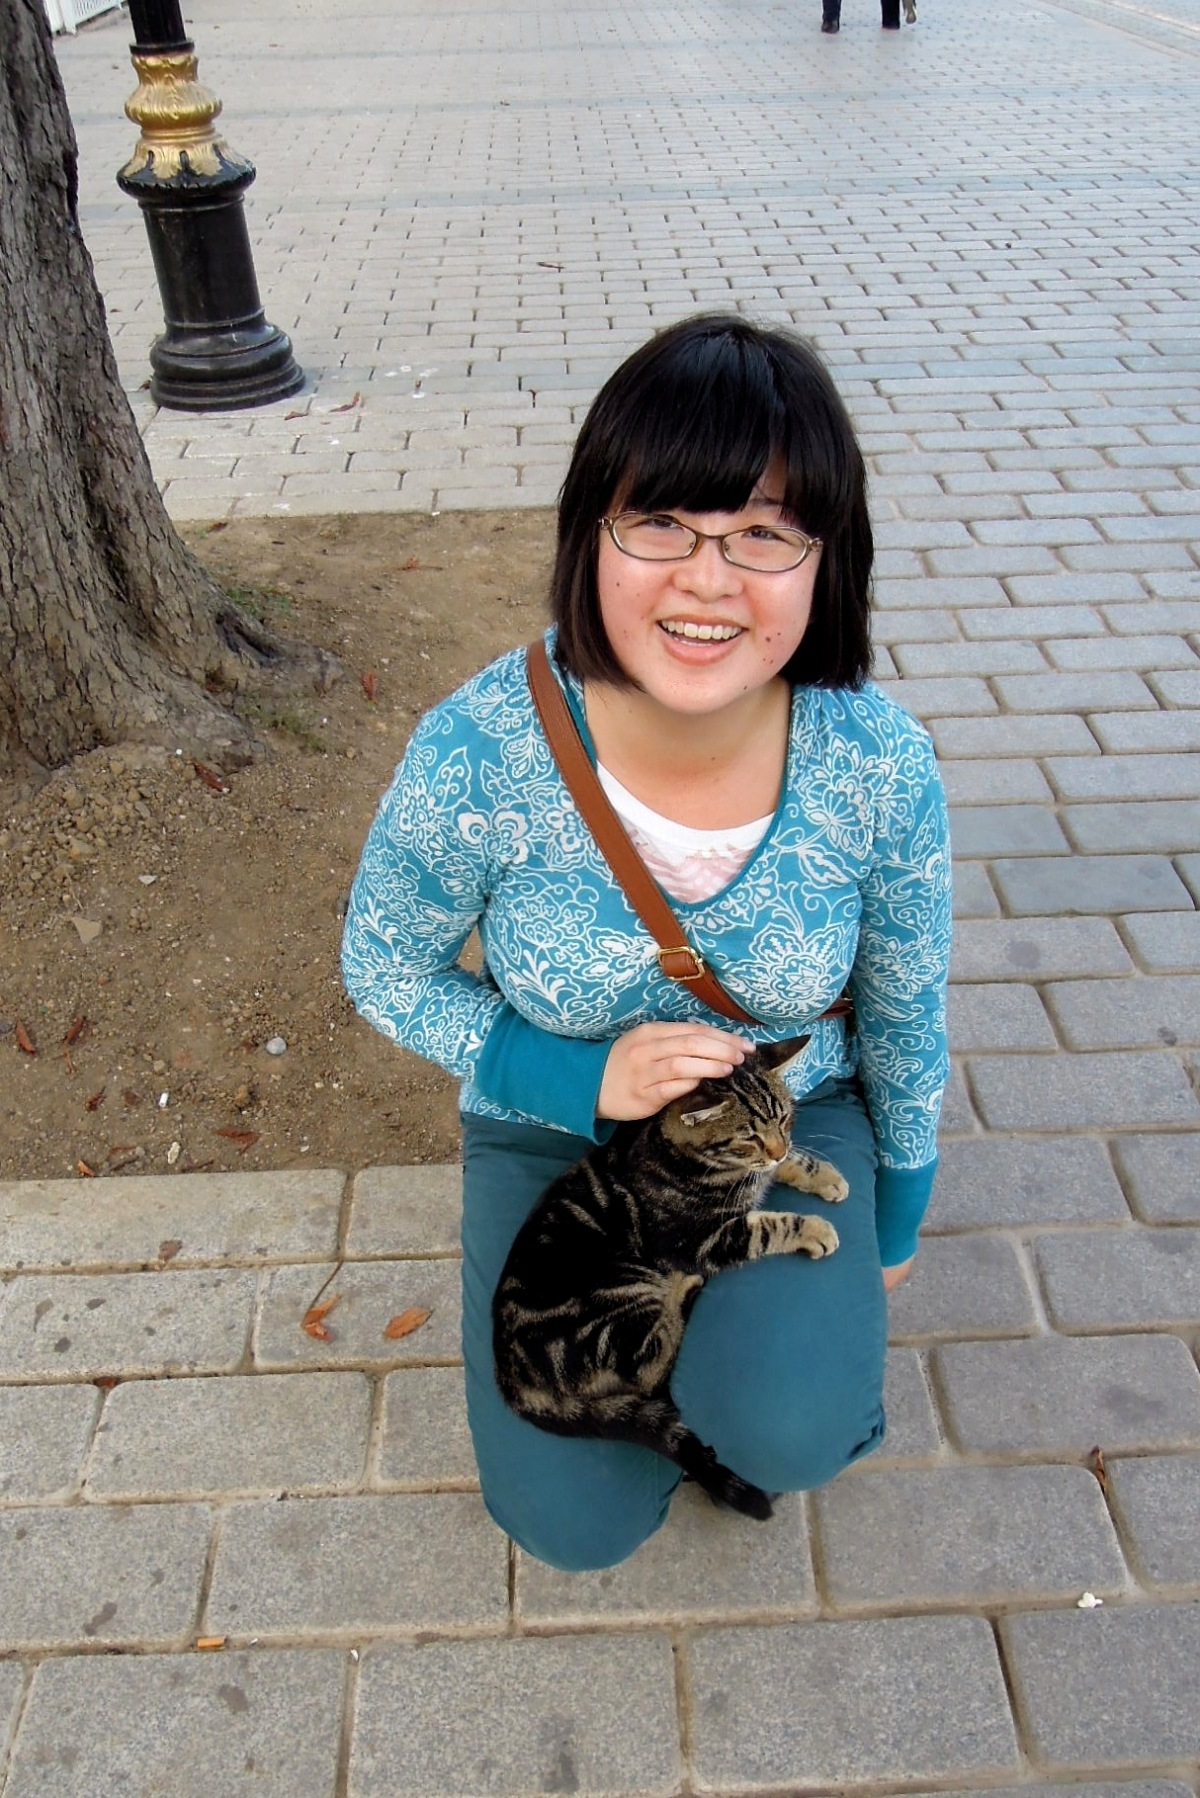 Very happy Lisa squatting on the ground with a little tabby kitten on her lap